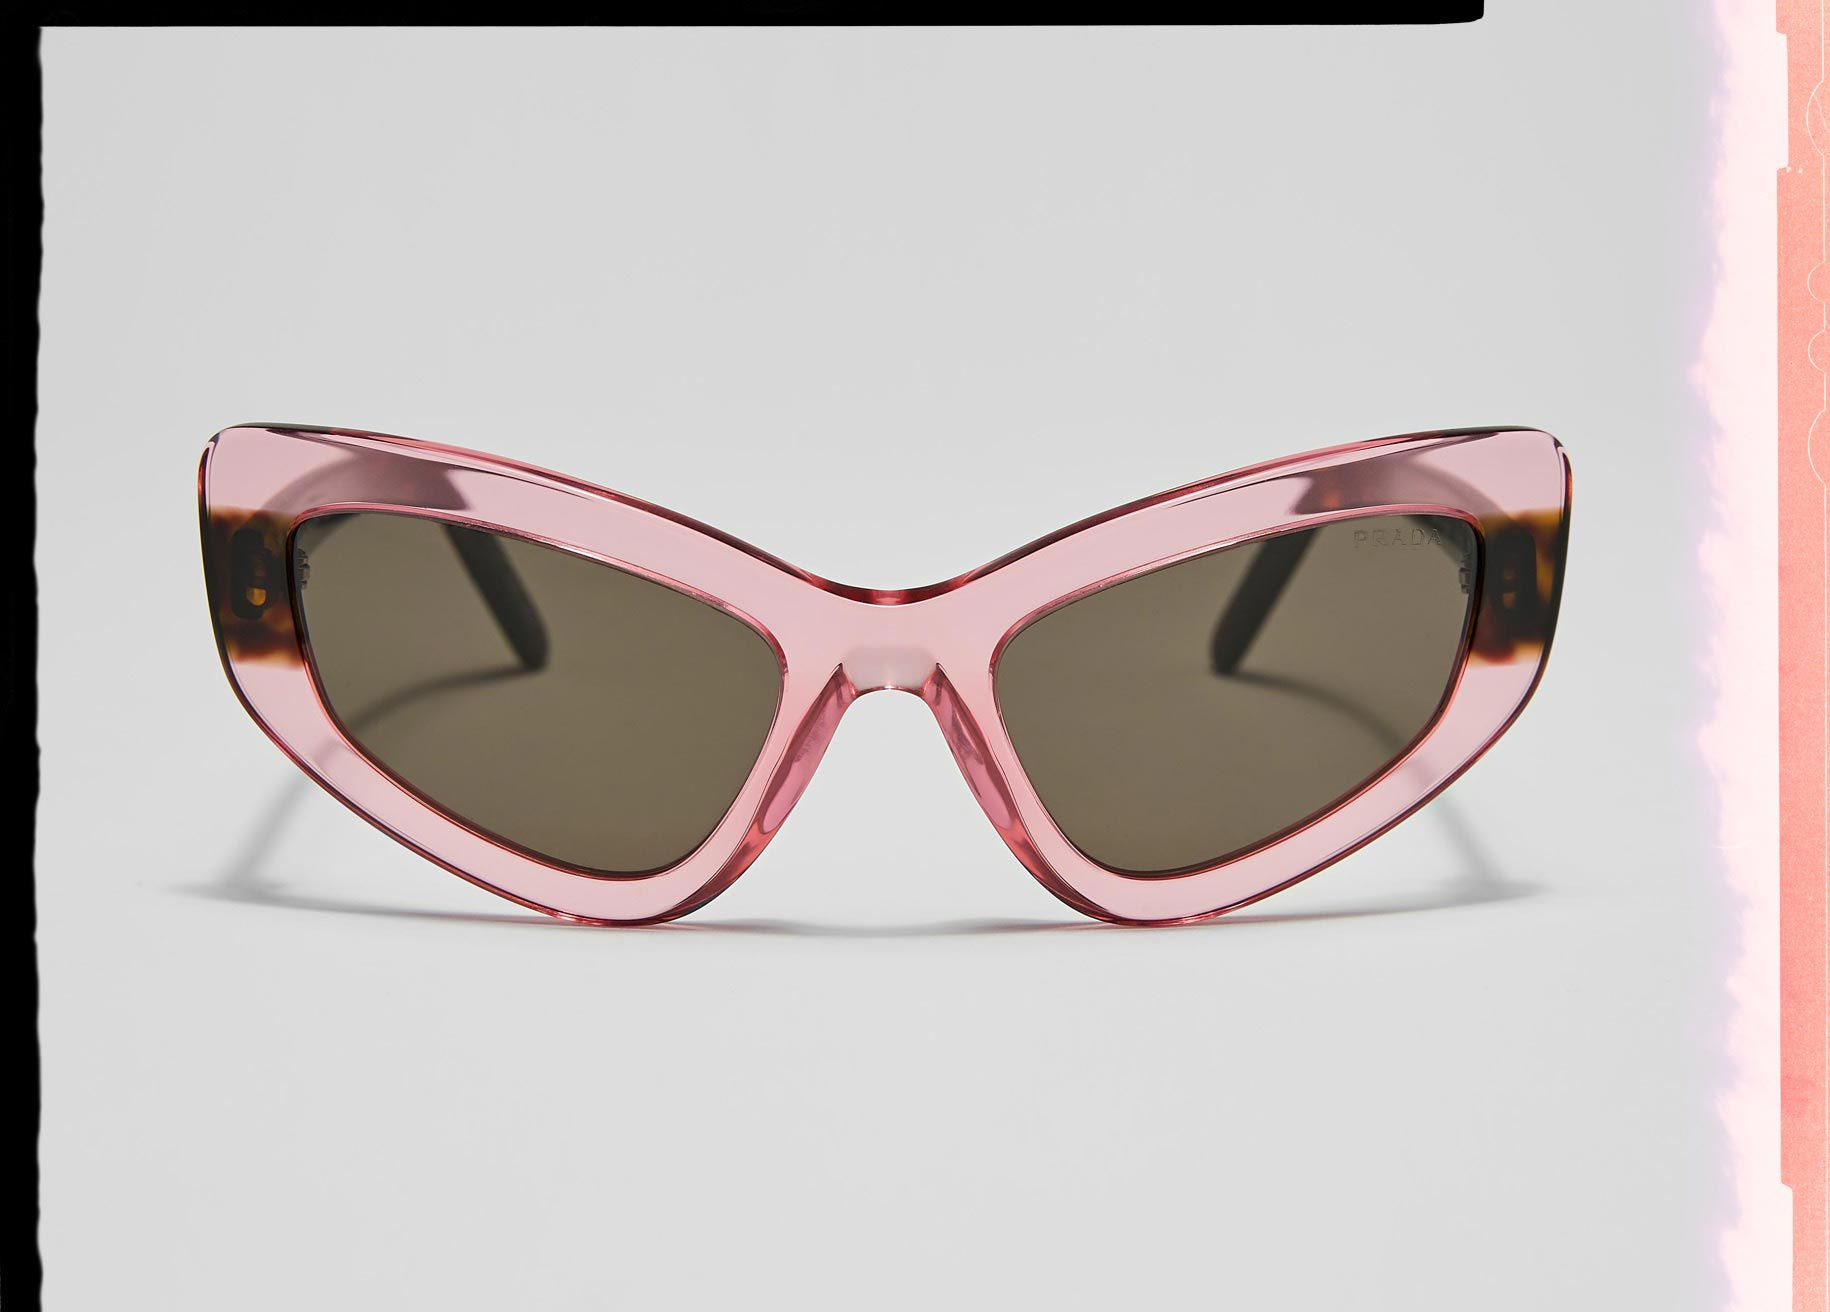 0ff430be4a1 Trending Sunglasses for Women - Logomania